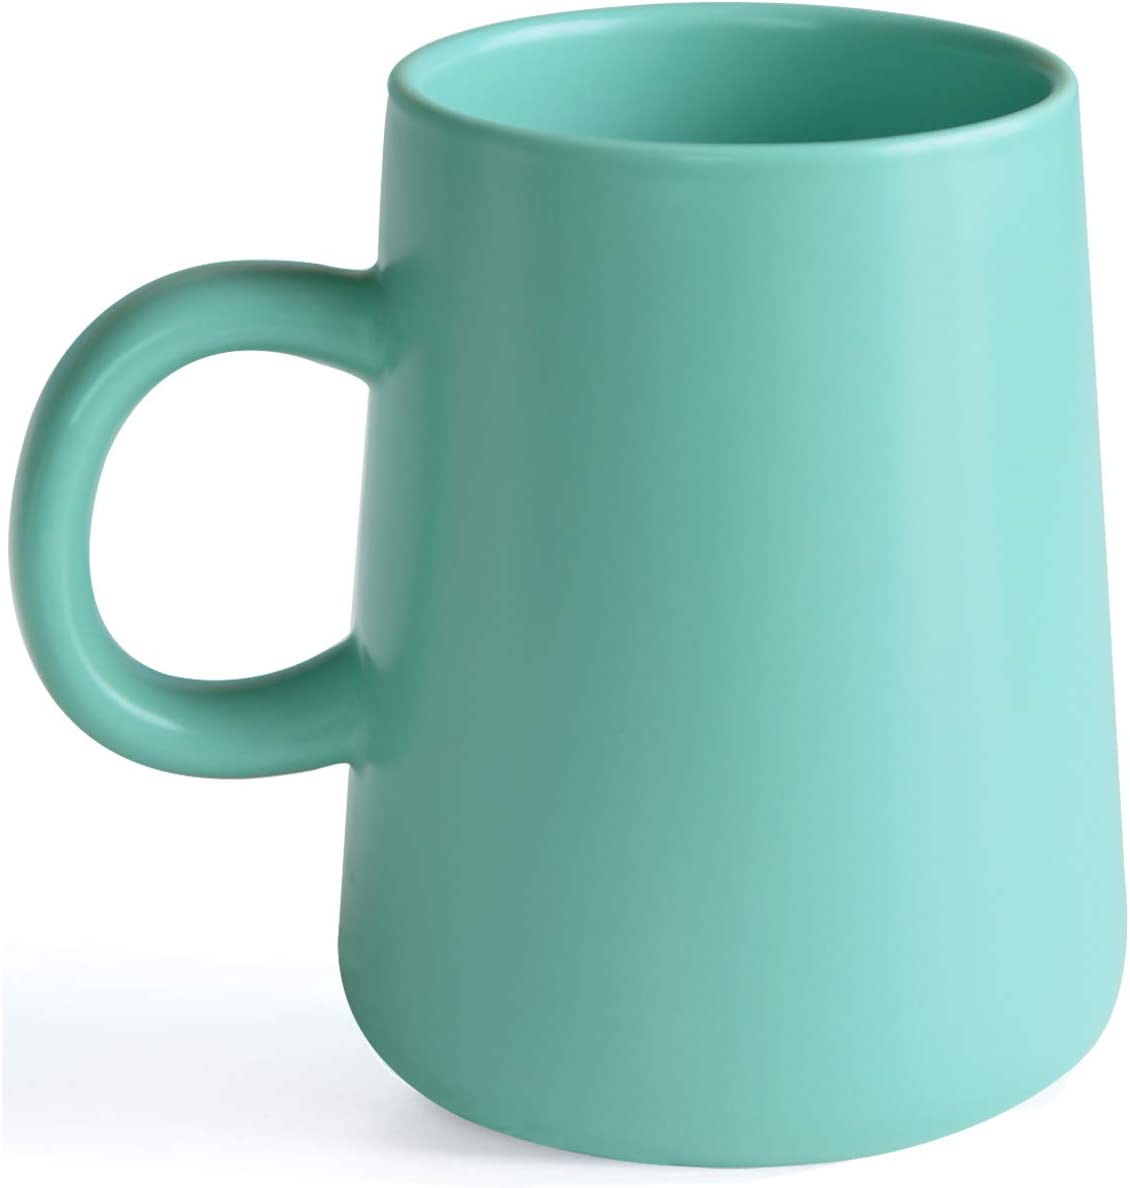 Arraden Coffee Mug, Matte Ceramic Coffee Cup, Both Hot & Cold Beverage Tea Cup for Office & Home, Suitable for Dishwasher & Microwave & Oven, 16.5 oz (Light Green)